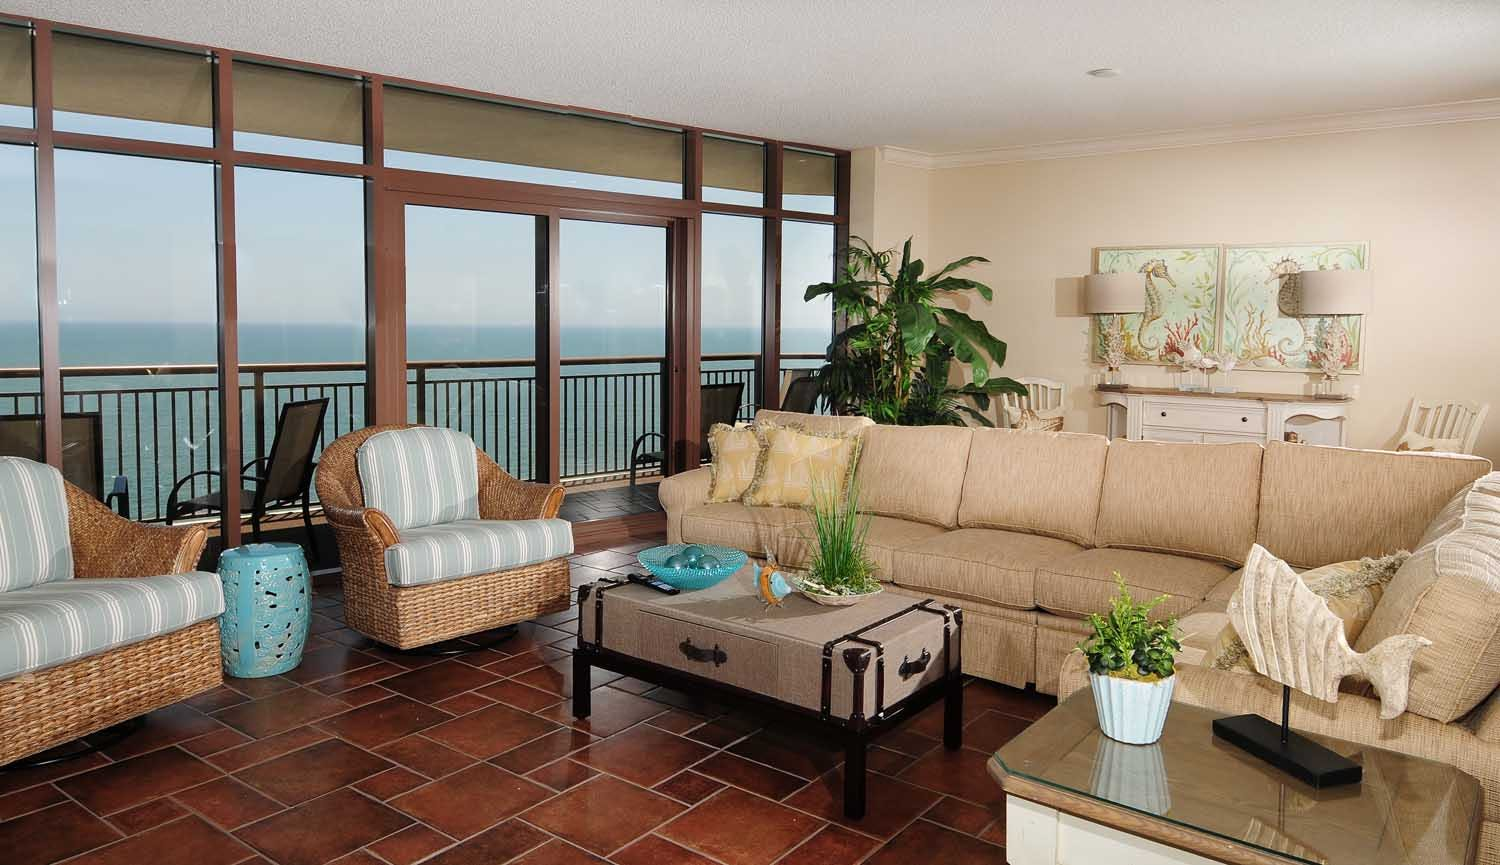 Prime North Beach Plantation 5 Bedroom Oceanfront Charleston Condo Home Interior And Landscaping Ologienasavecom